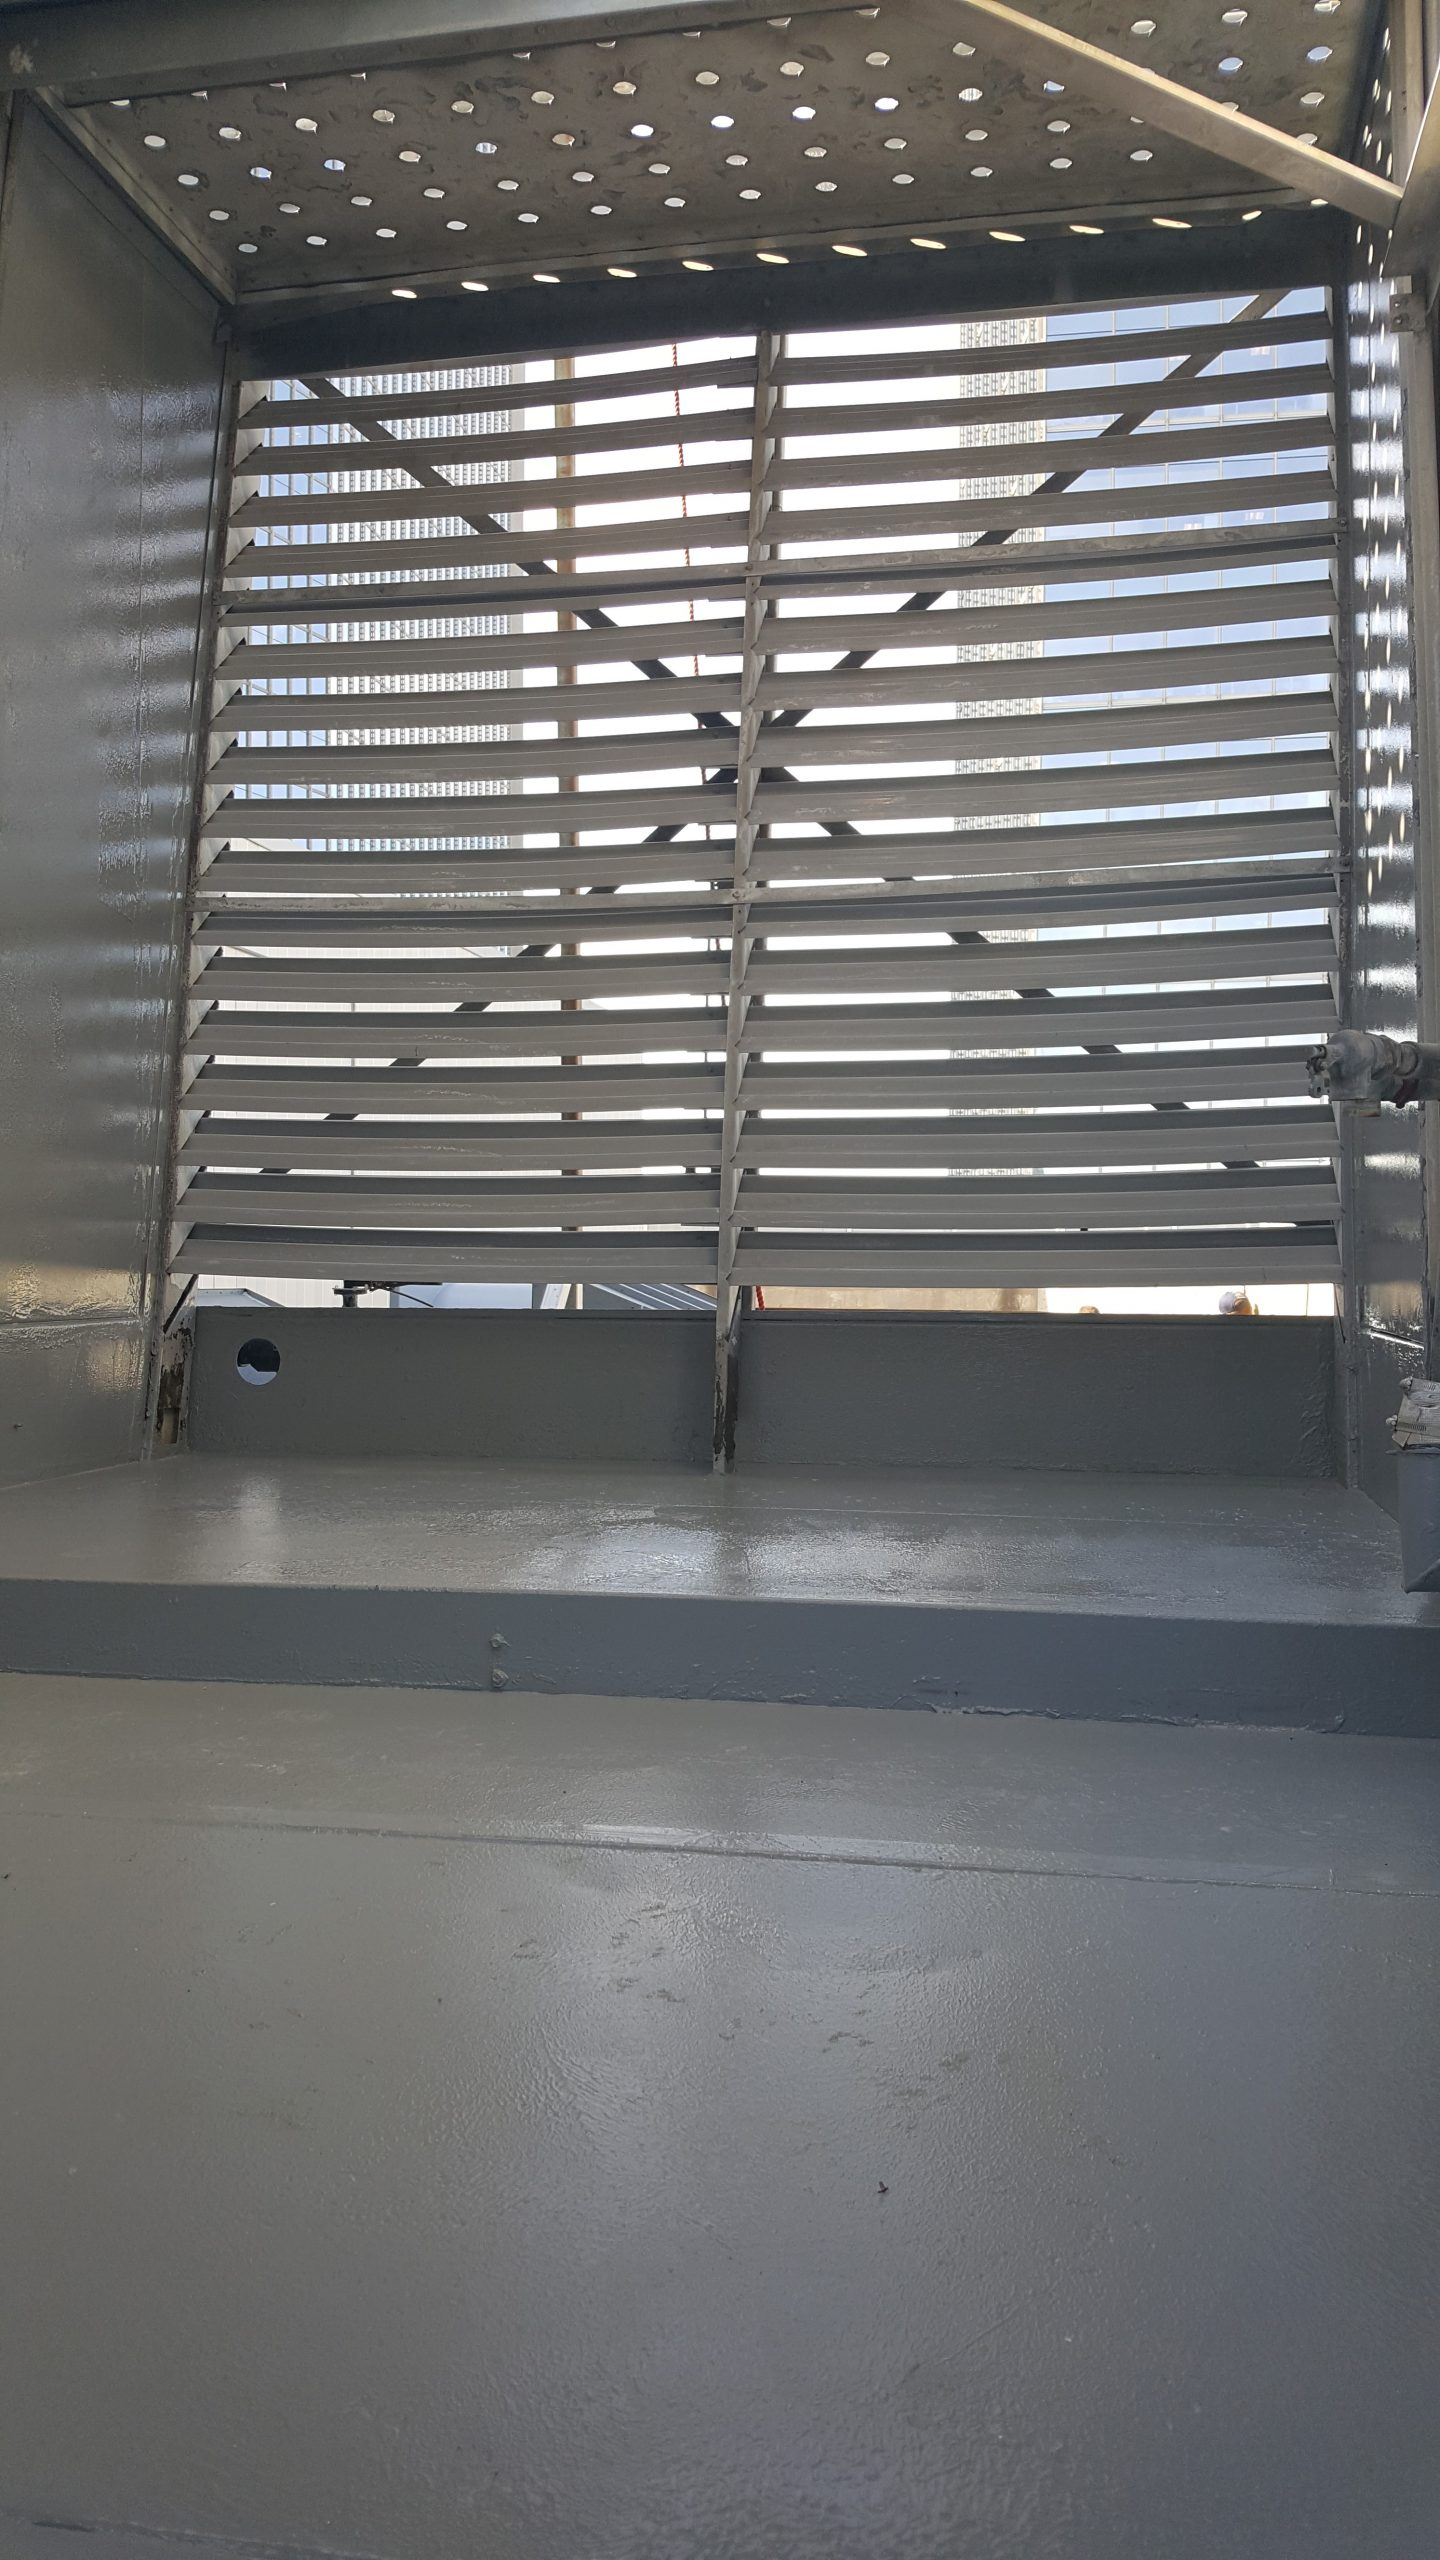 interior of cross flow tower view of louvers and freshly epoxy painted floor and wall prior to installement of fill